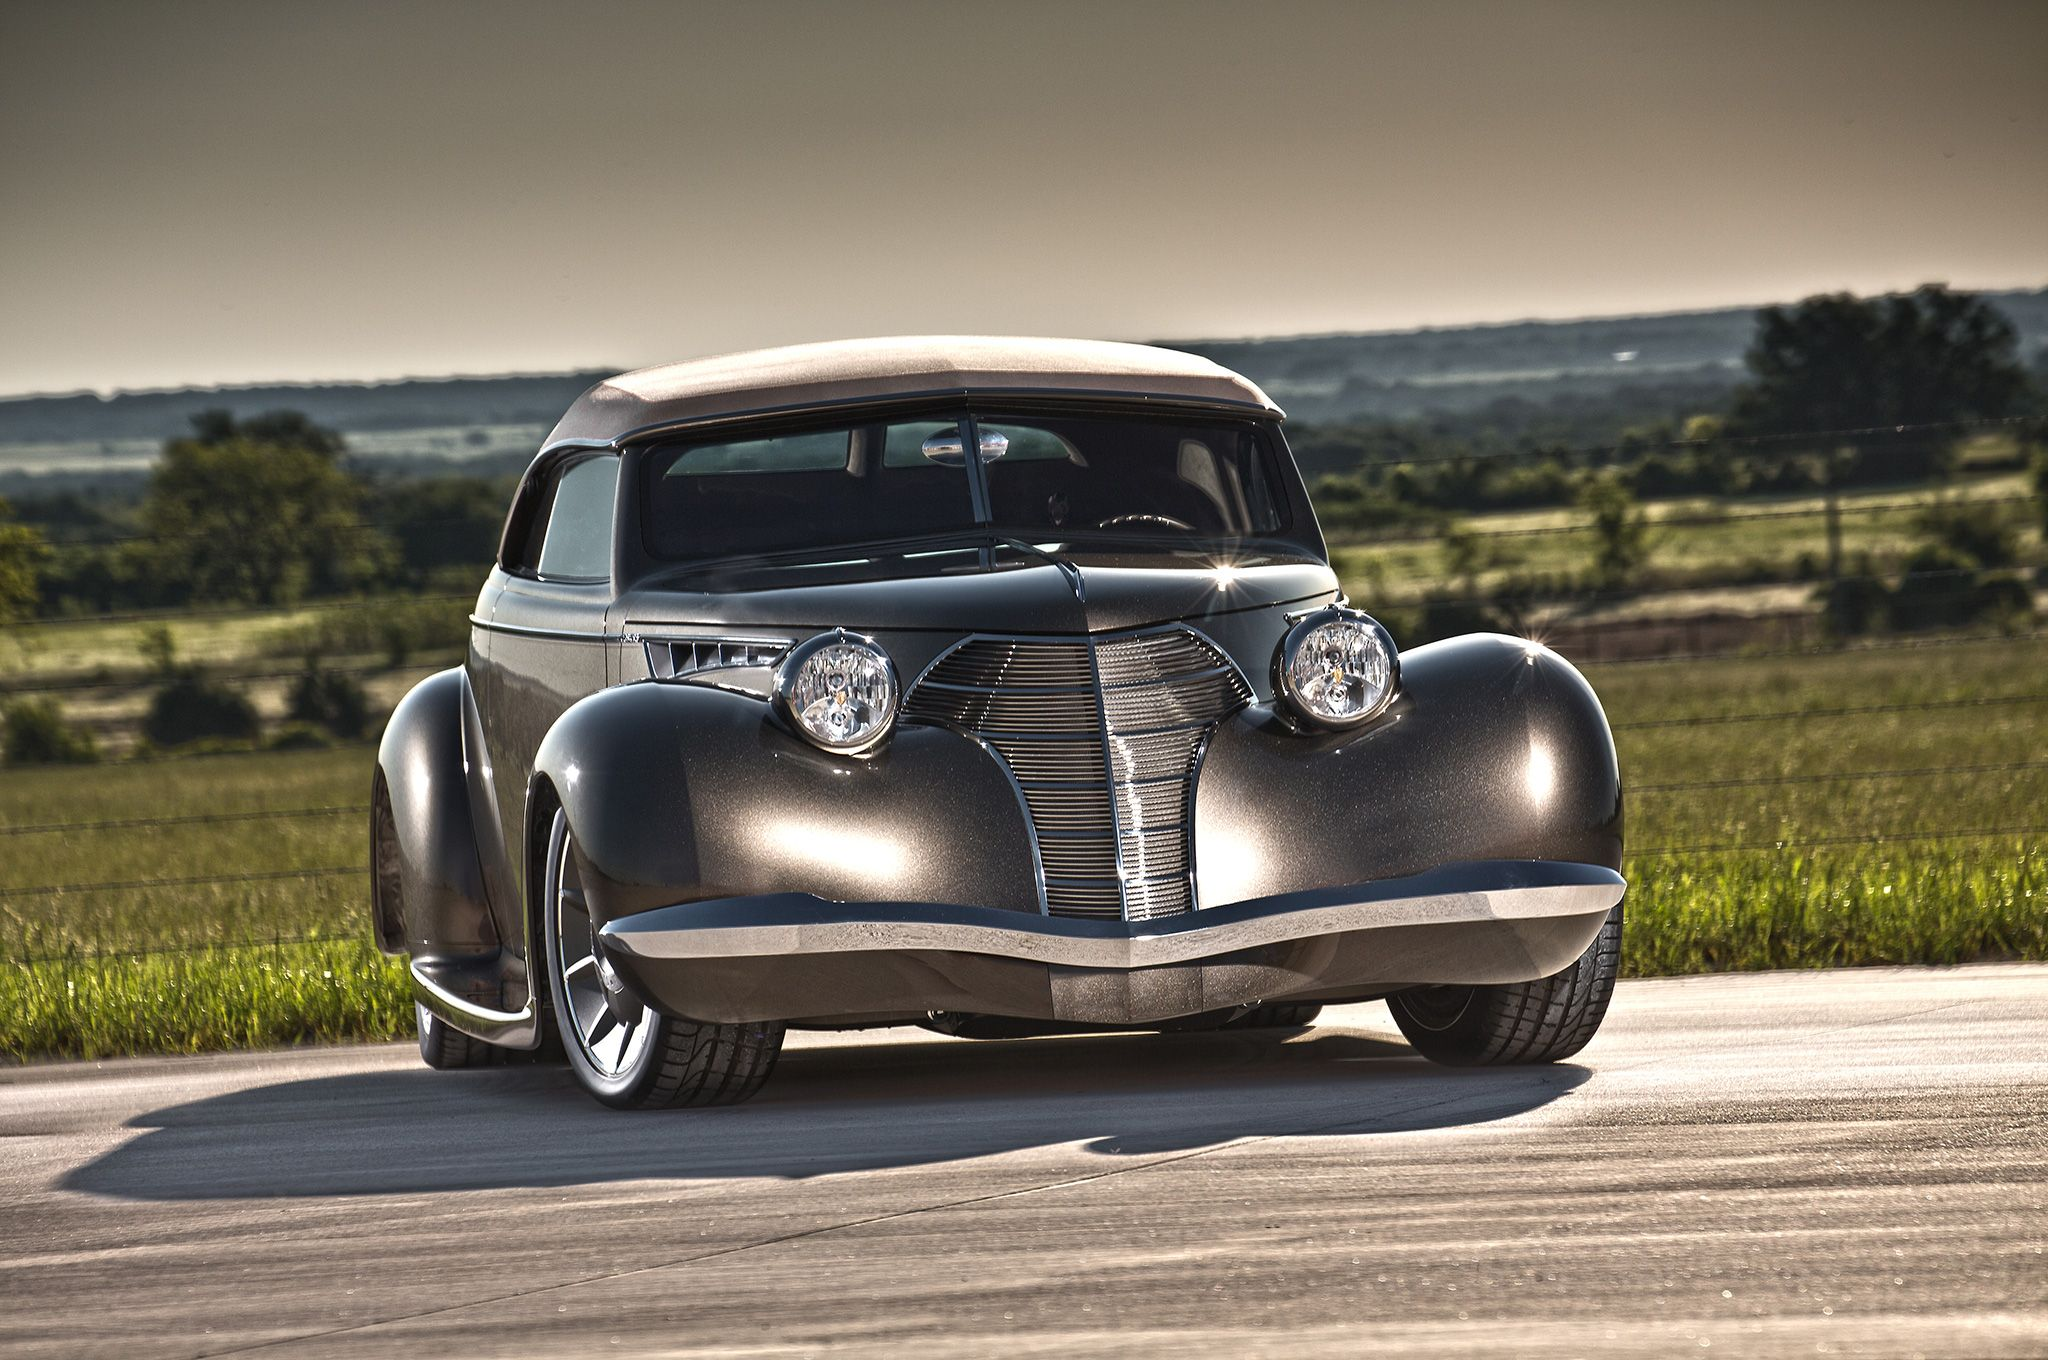 1939 Olds Convertible Ridler Award Winner Might Just be One of the ...